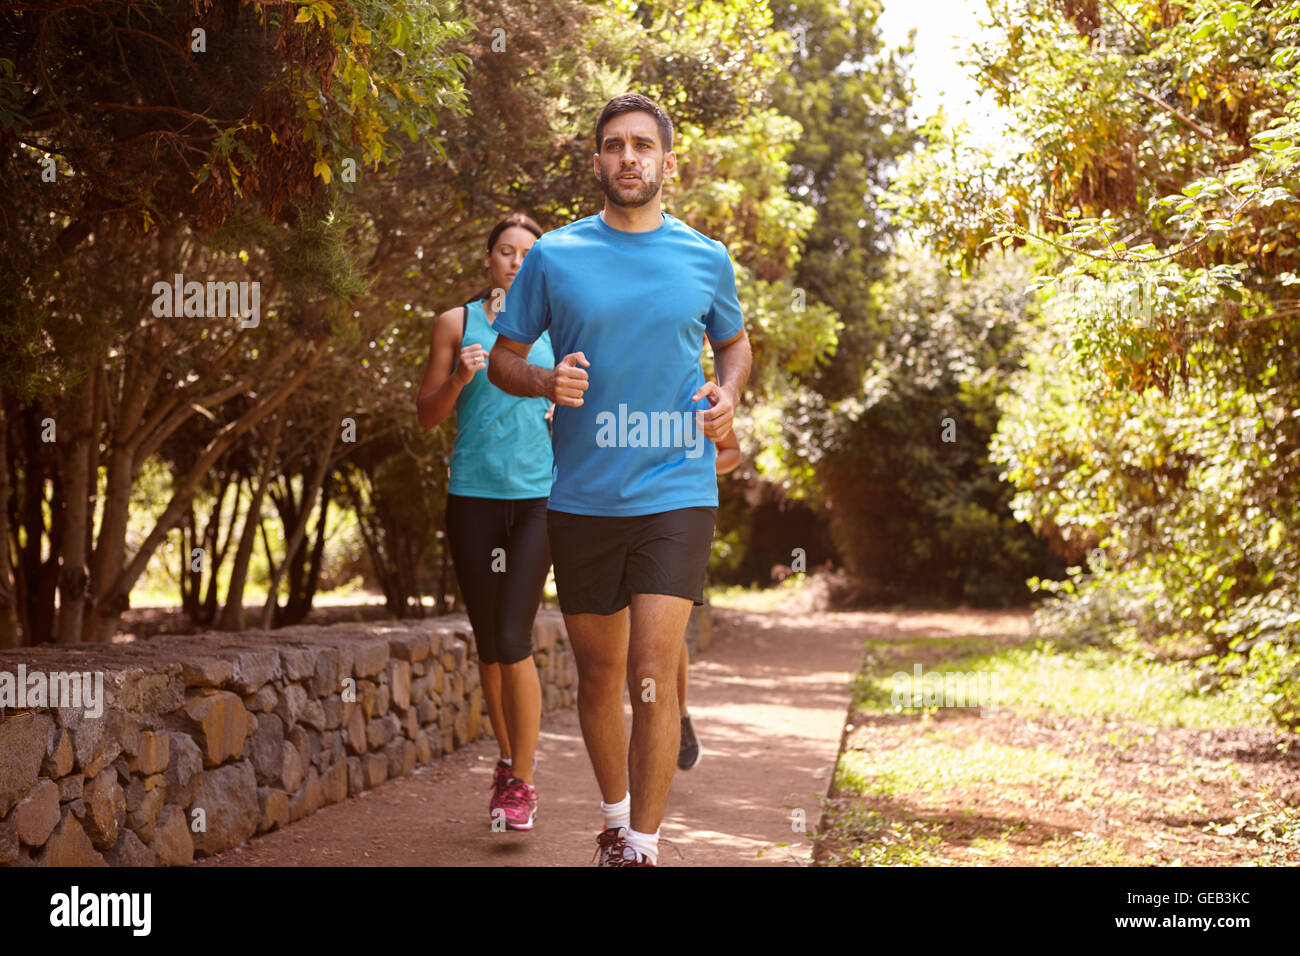 A guy and two girls running on a paved running trail with trees and a stone wall behind them wearing t-shirts and - Stock Image